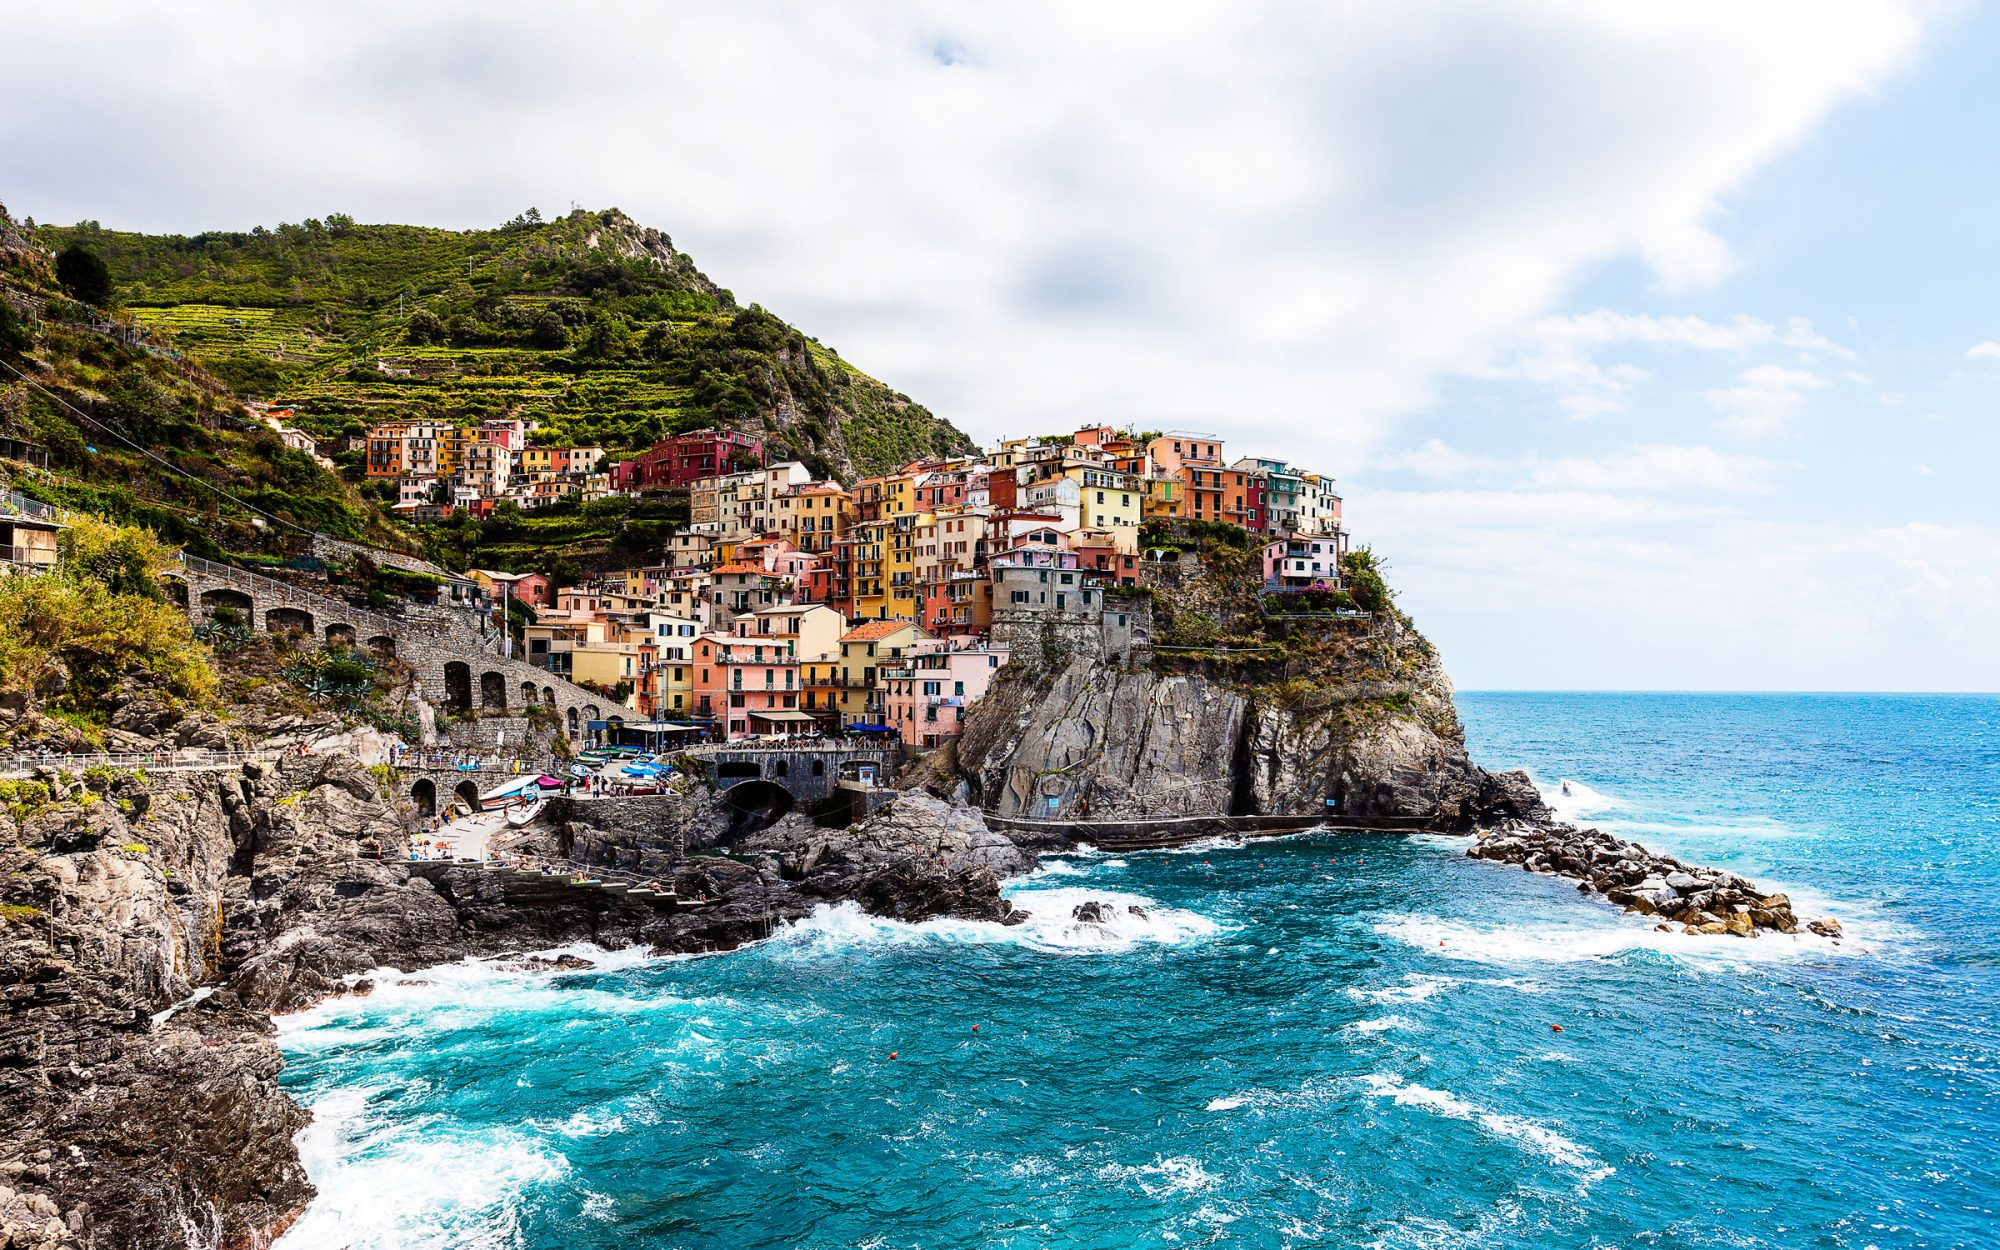 How Cinque Terre Plans to Handle Mass Tourism